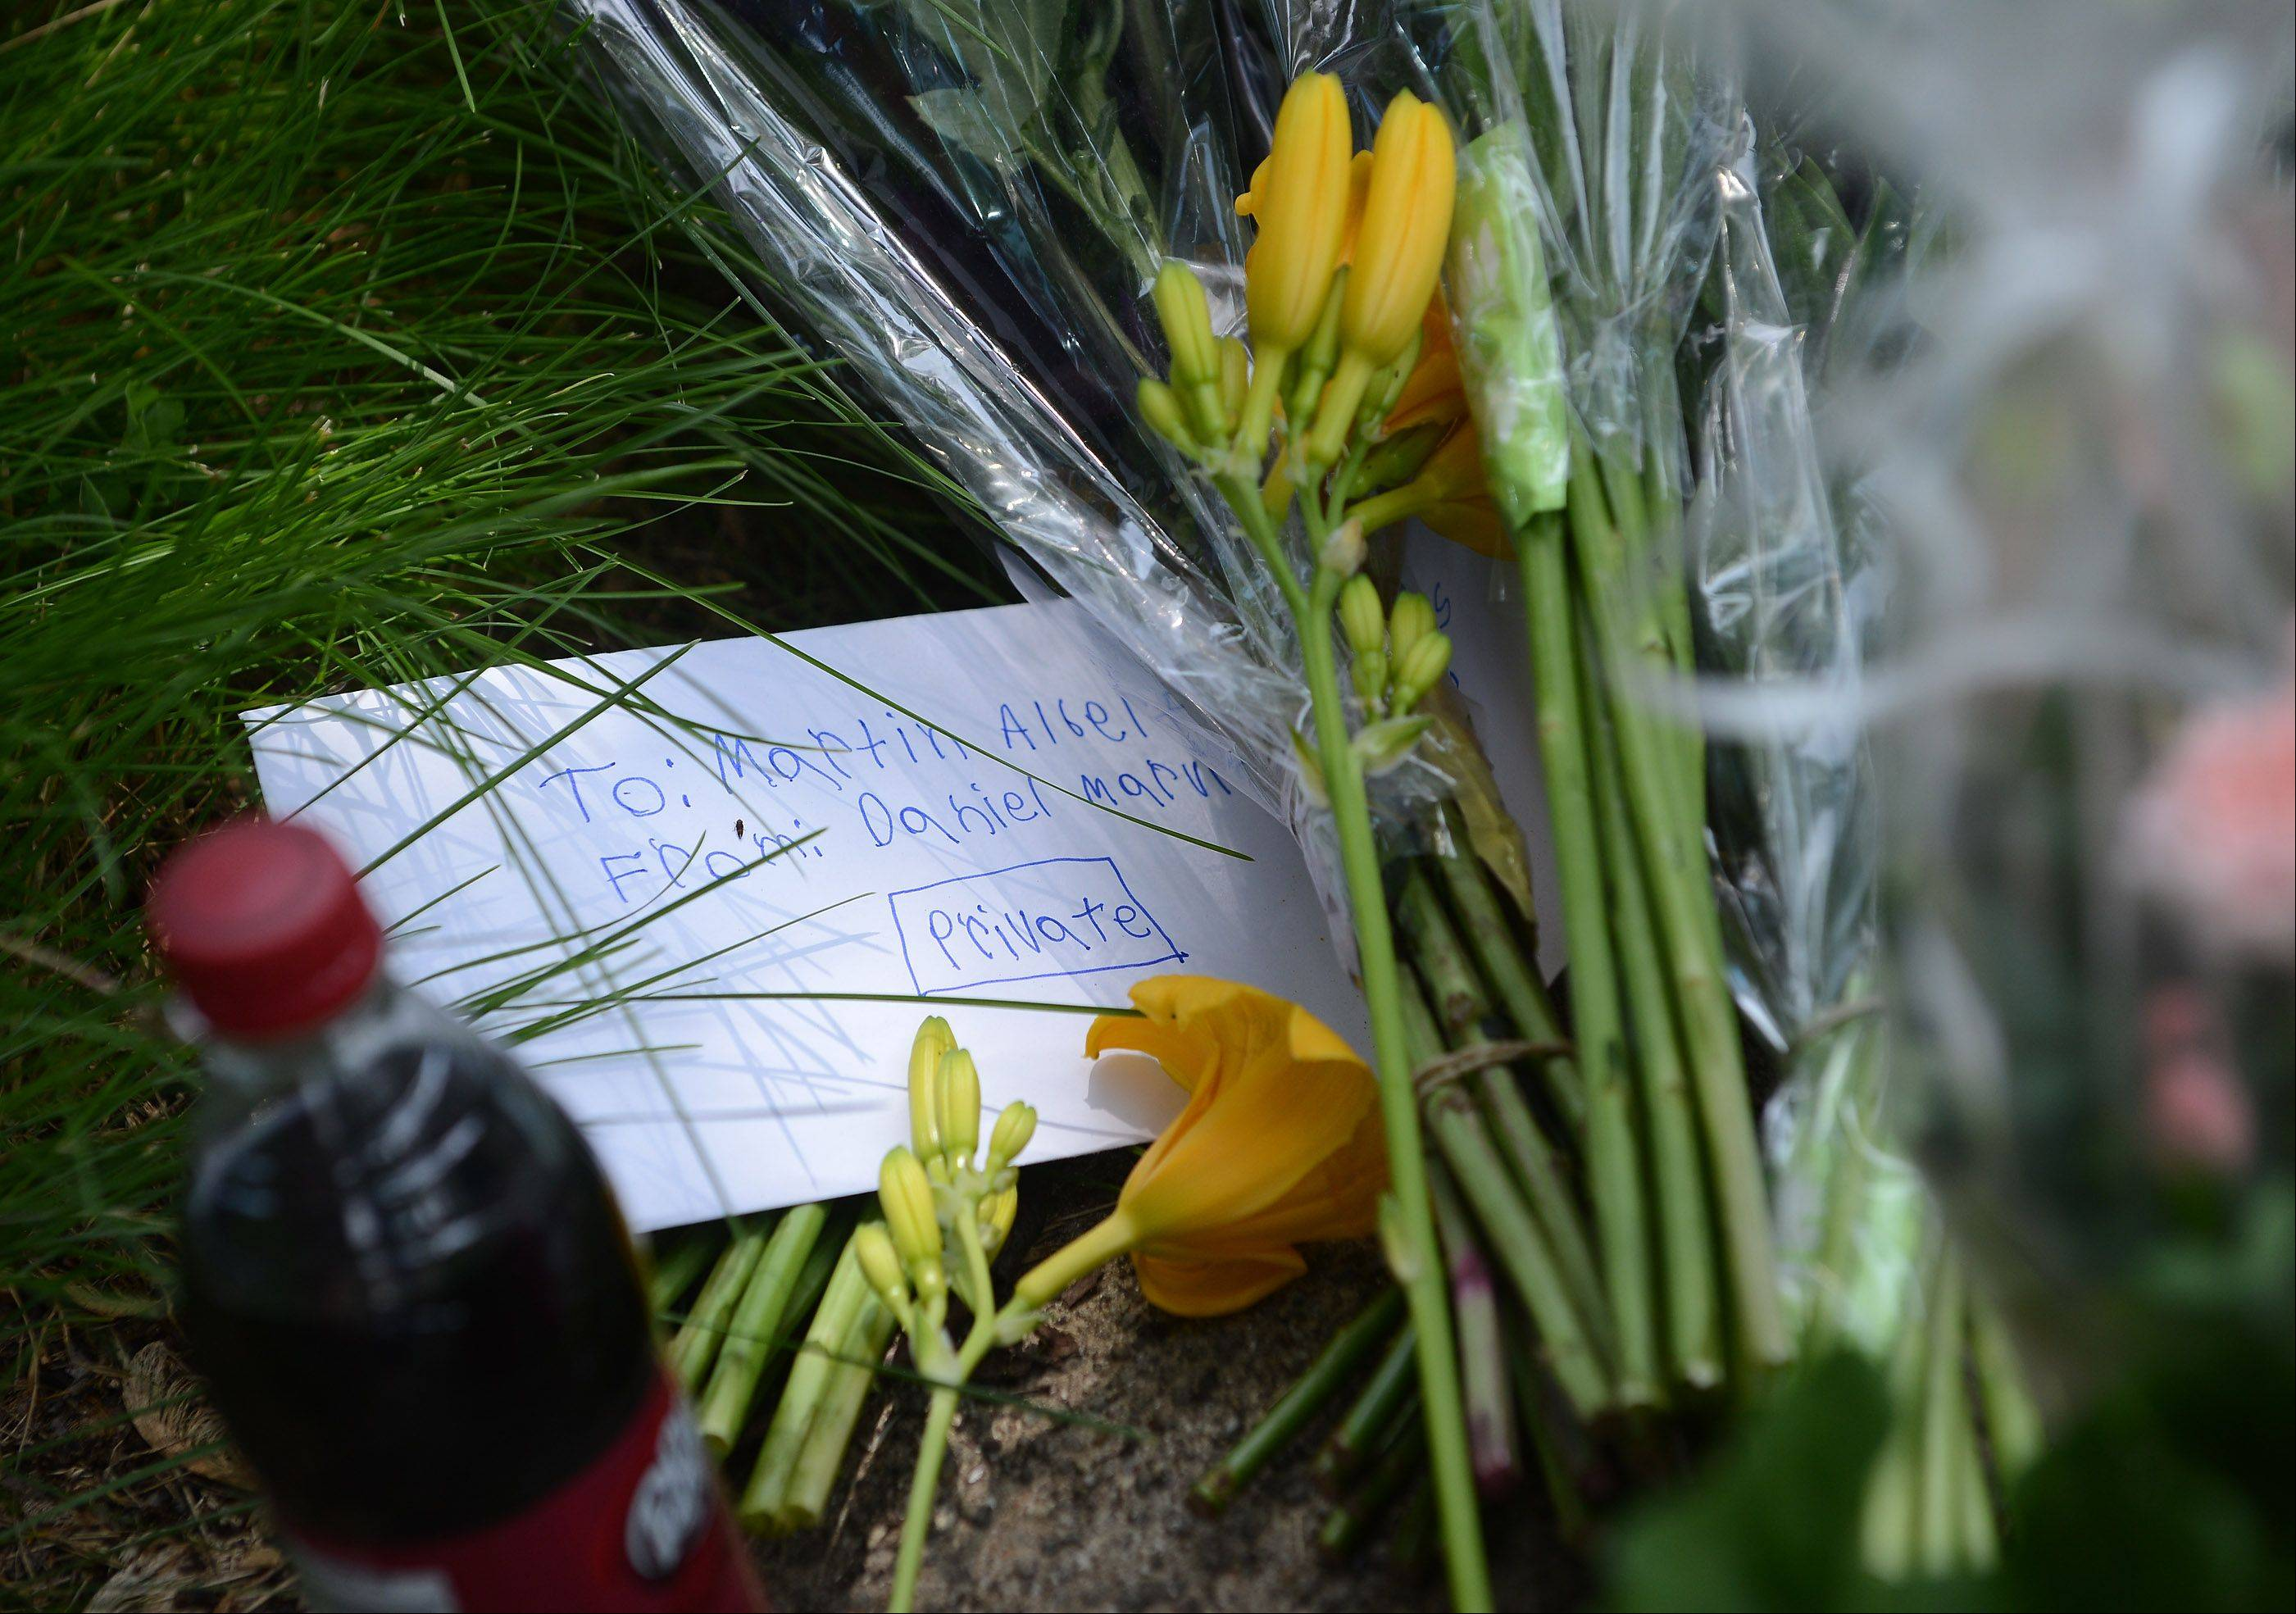 A private note is left at a memorial outside the home of Martin Powers, a teacher at Kimball Middle School.